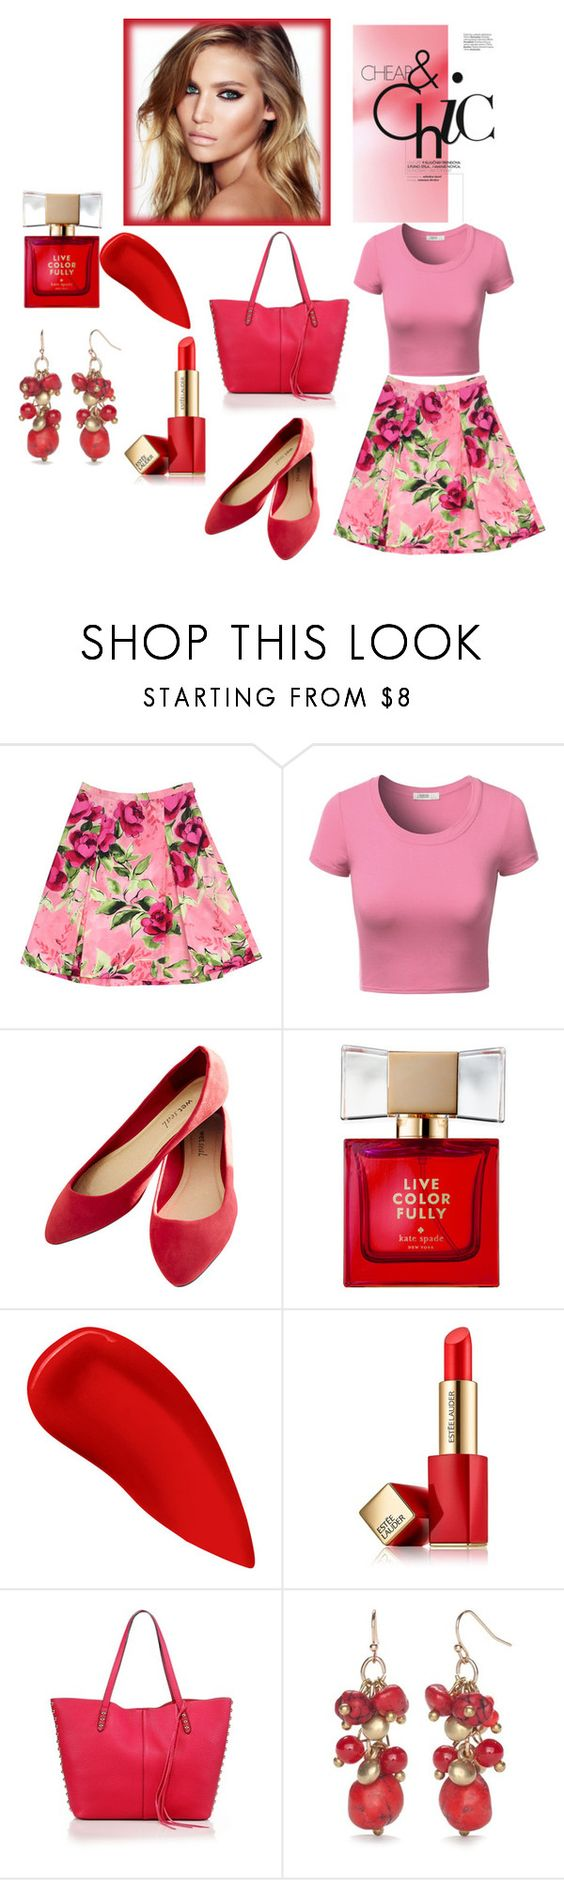 """""""MODA"""" by suadapolyvore ❤ liked on Polyvore featuring Love Moschino, J.TOMSON, Wet Seal, Charlotte Tilbury, Kate Spade, Lipstick Queen, Estée Lauder, Rebecca Minkoff and New Directions"""